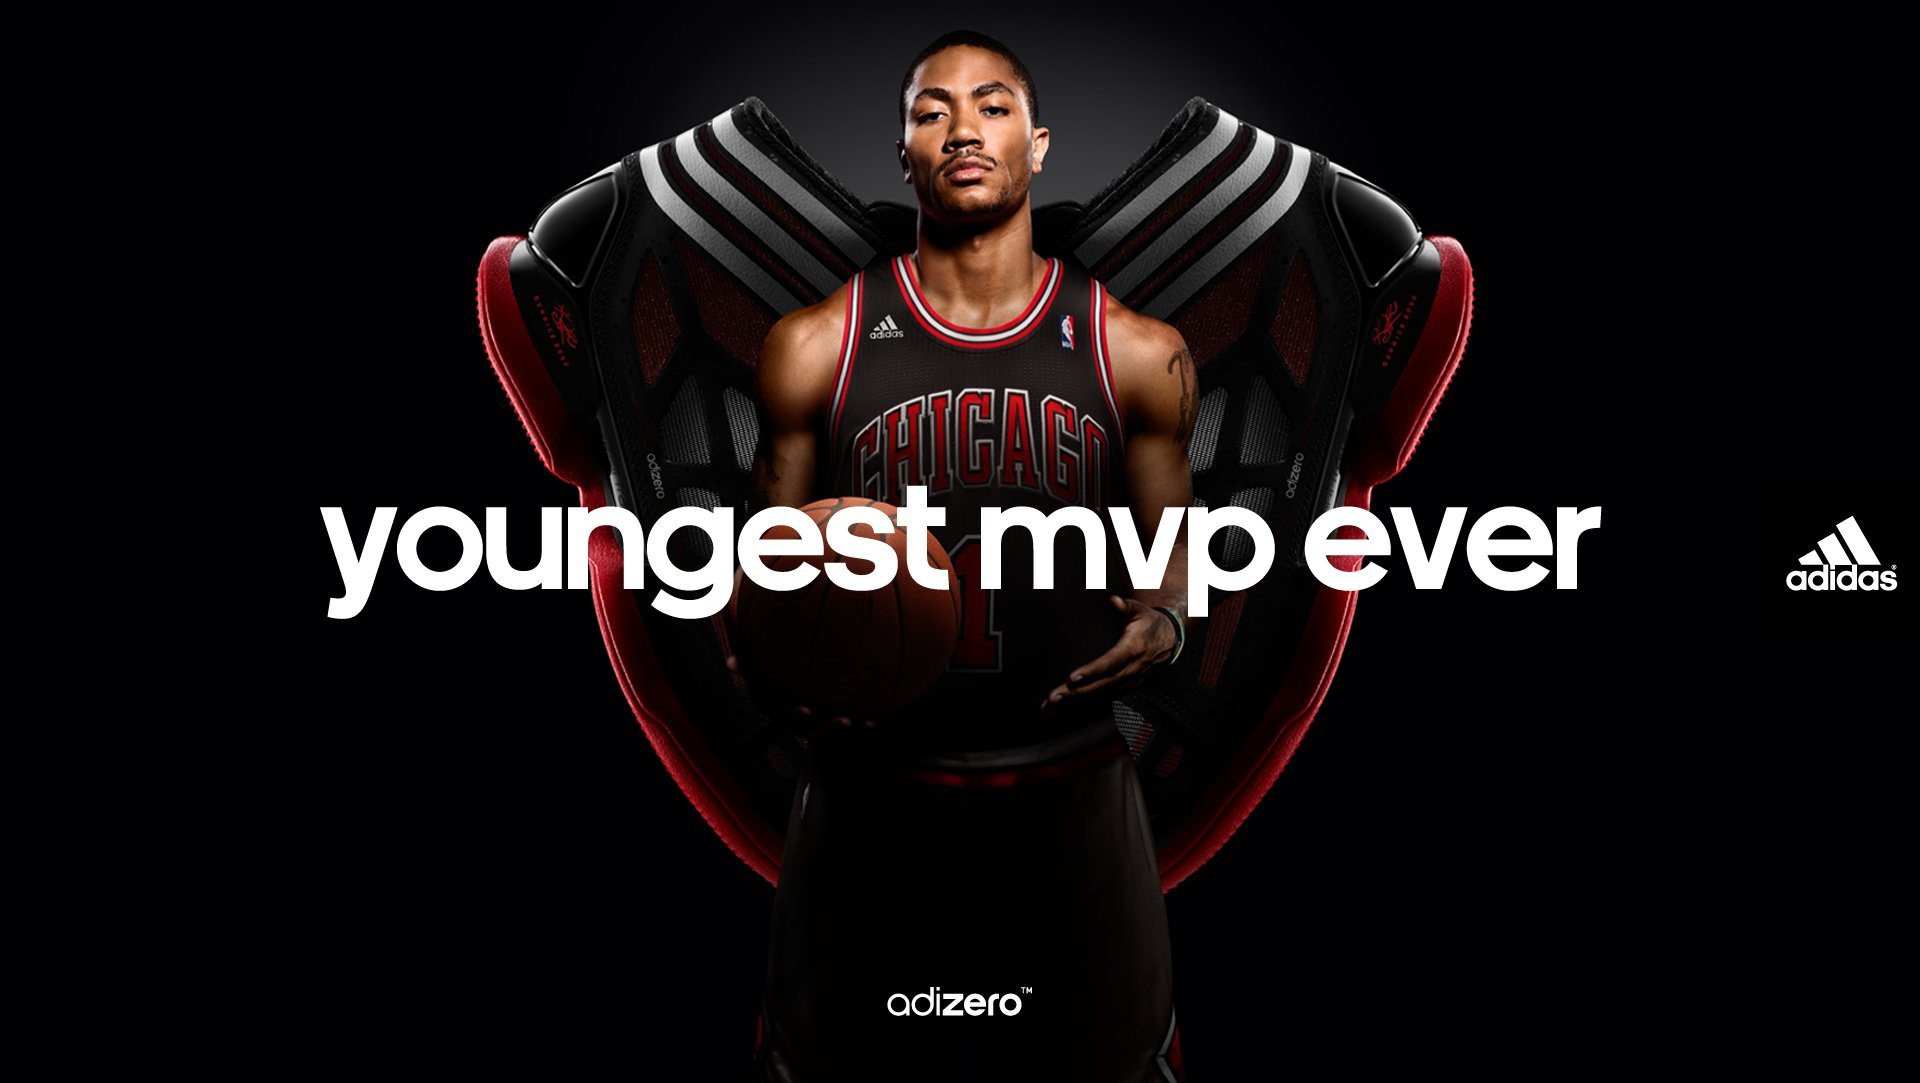 Check out the wallpaper from adidas Basketball featuring Rose and the 1920x1083